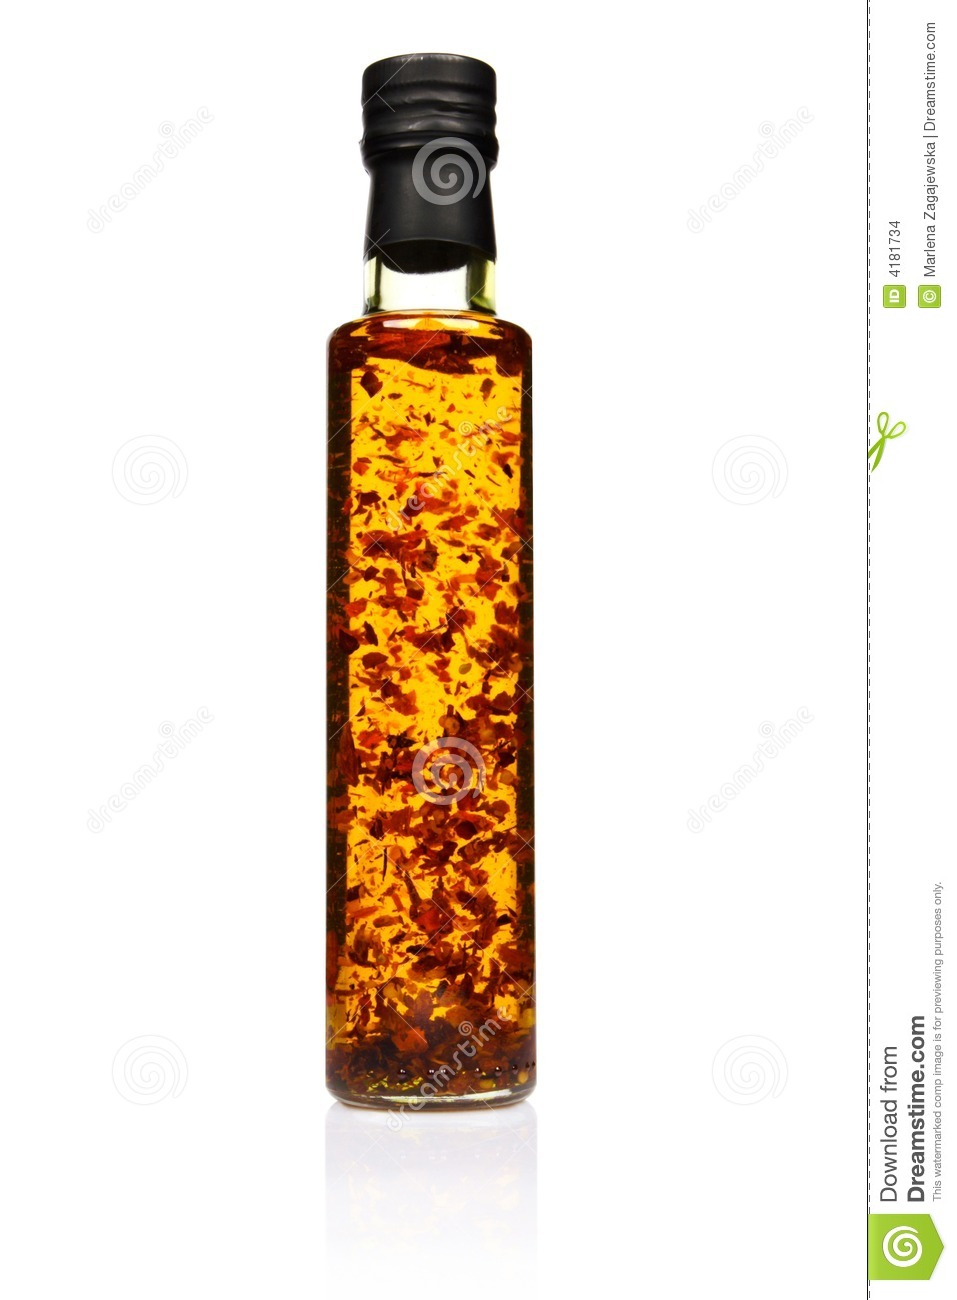 Bottle Of Spicy Olive Oil. Stock Images - Image: 4181734